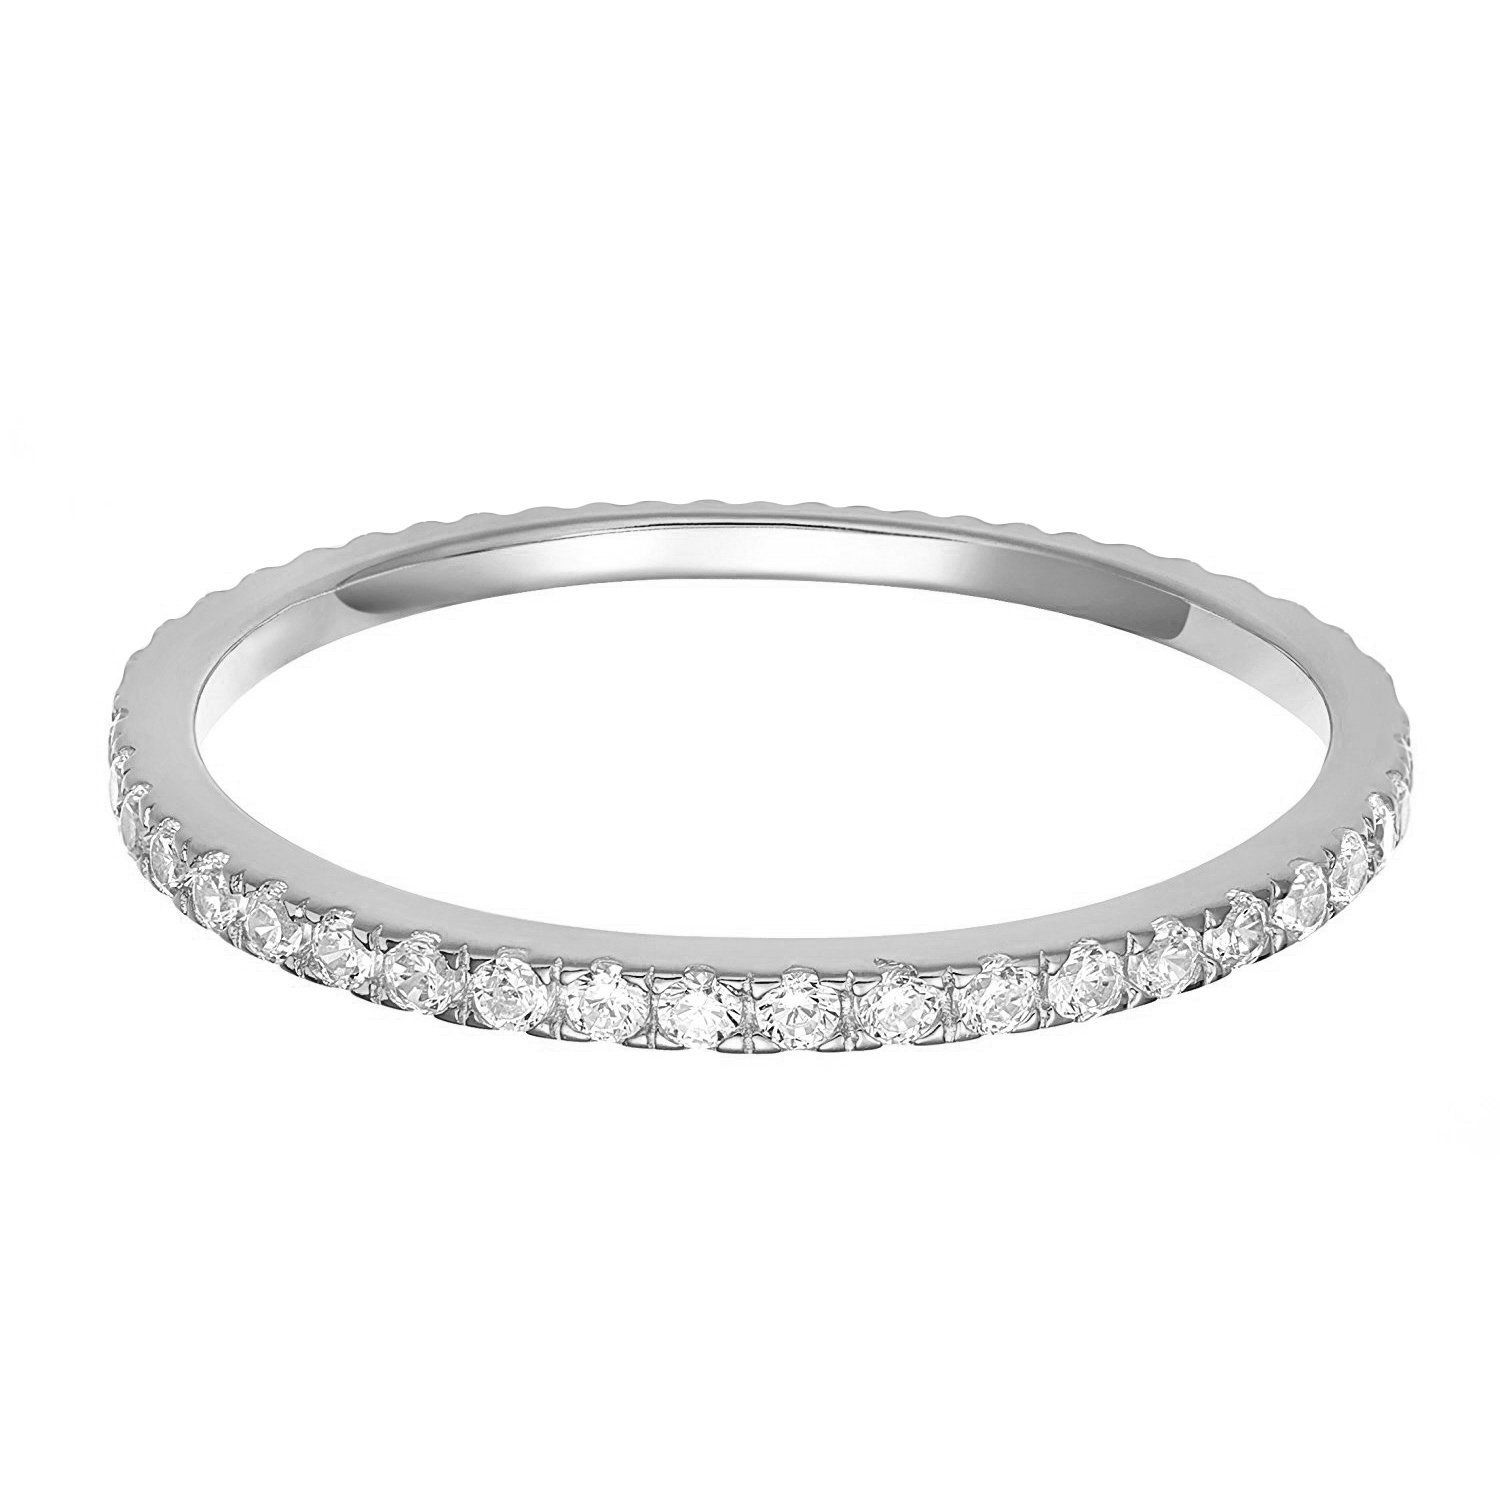 Fine Jewelry Personally Stackable Genuine White Topaz Sterling Silver Eternity Ring fiHt8A